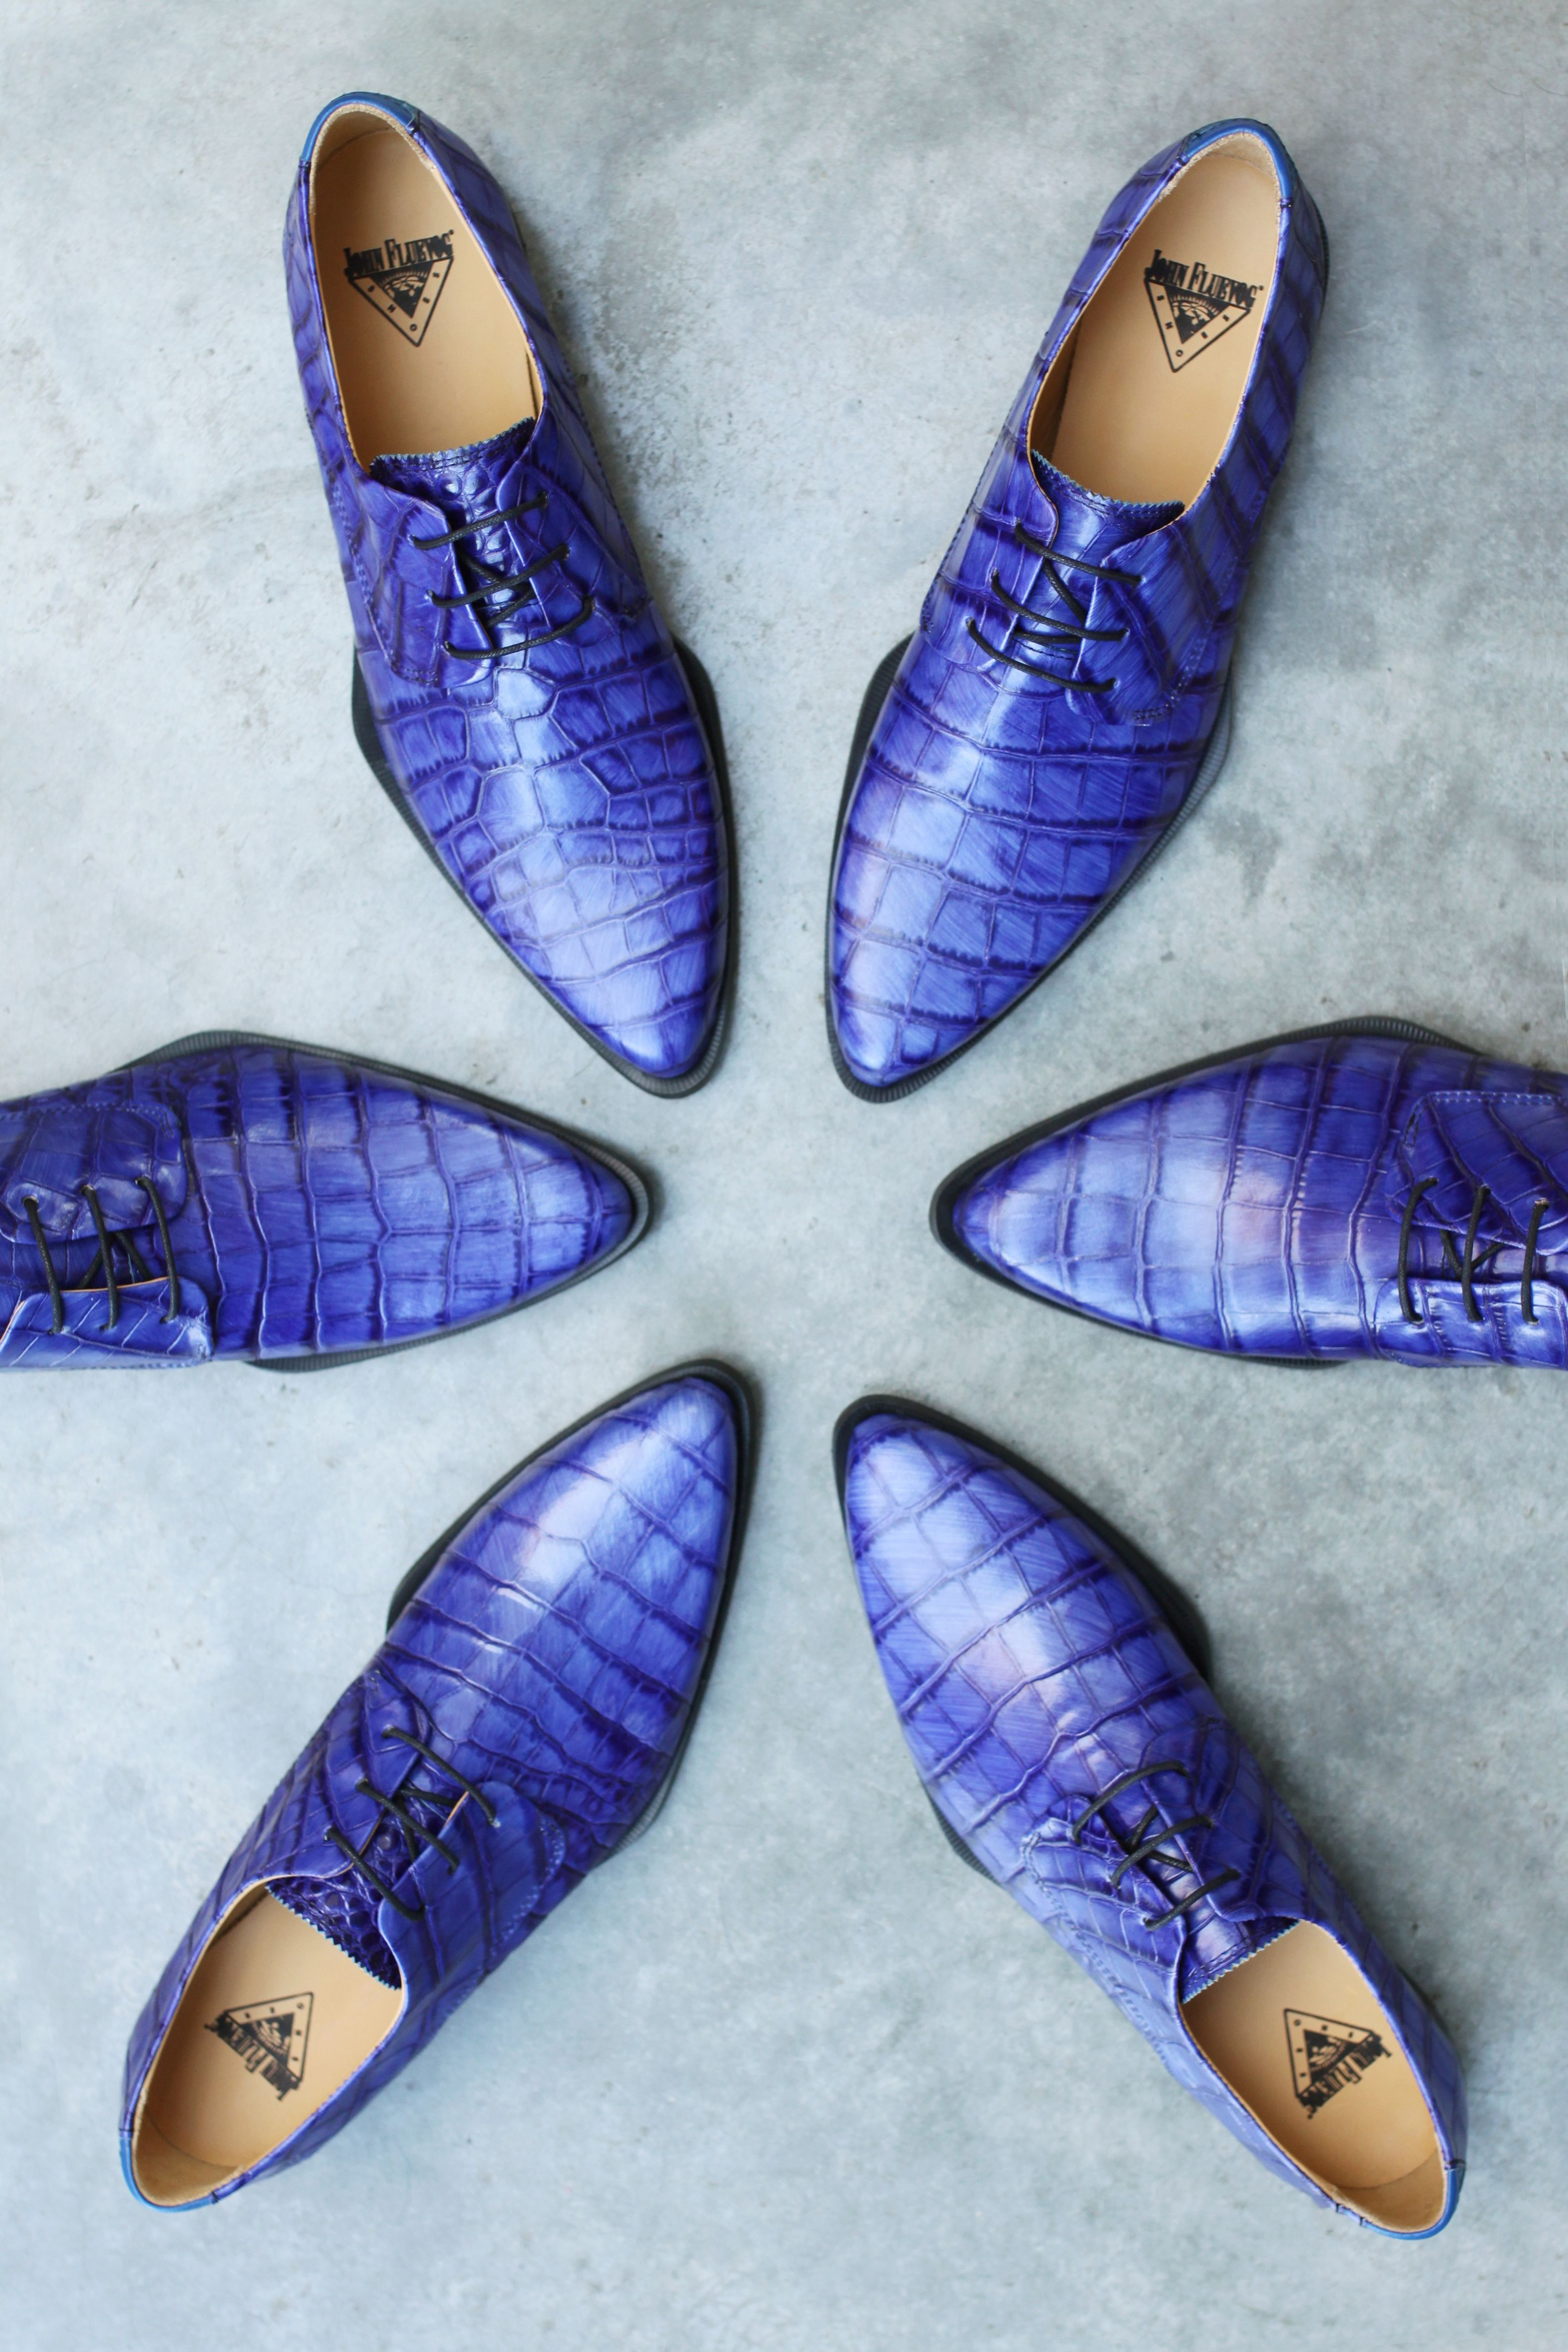 The Ace Face is a classically constructed, crocodile embossed lace-up derby with places to go and people to see.